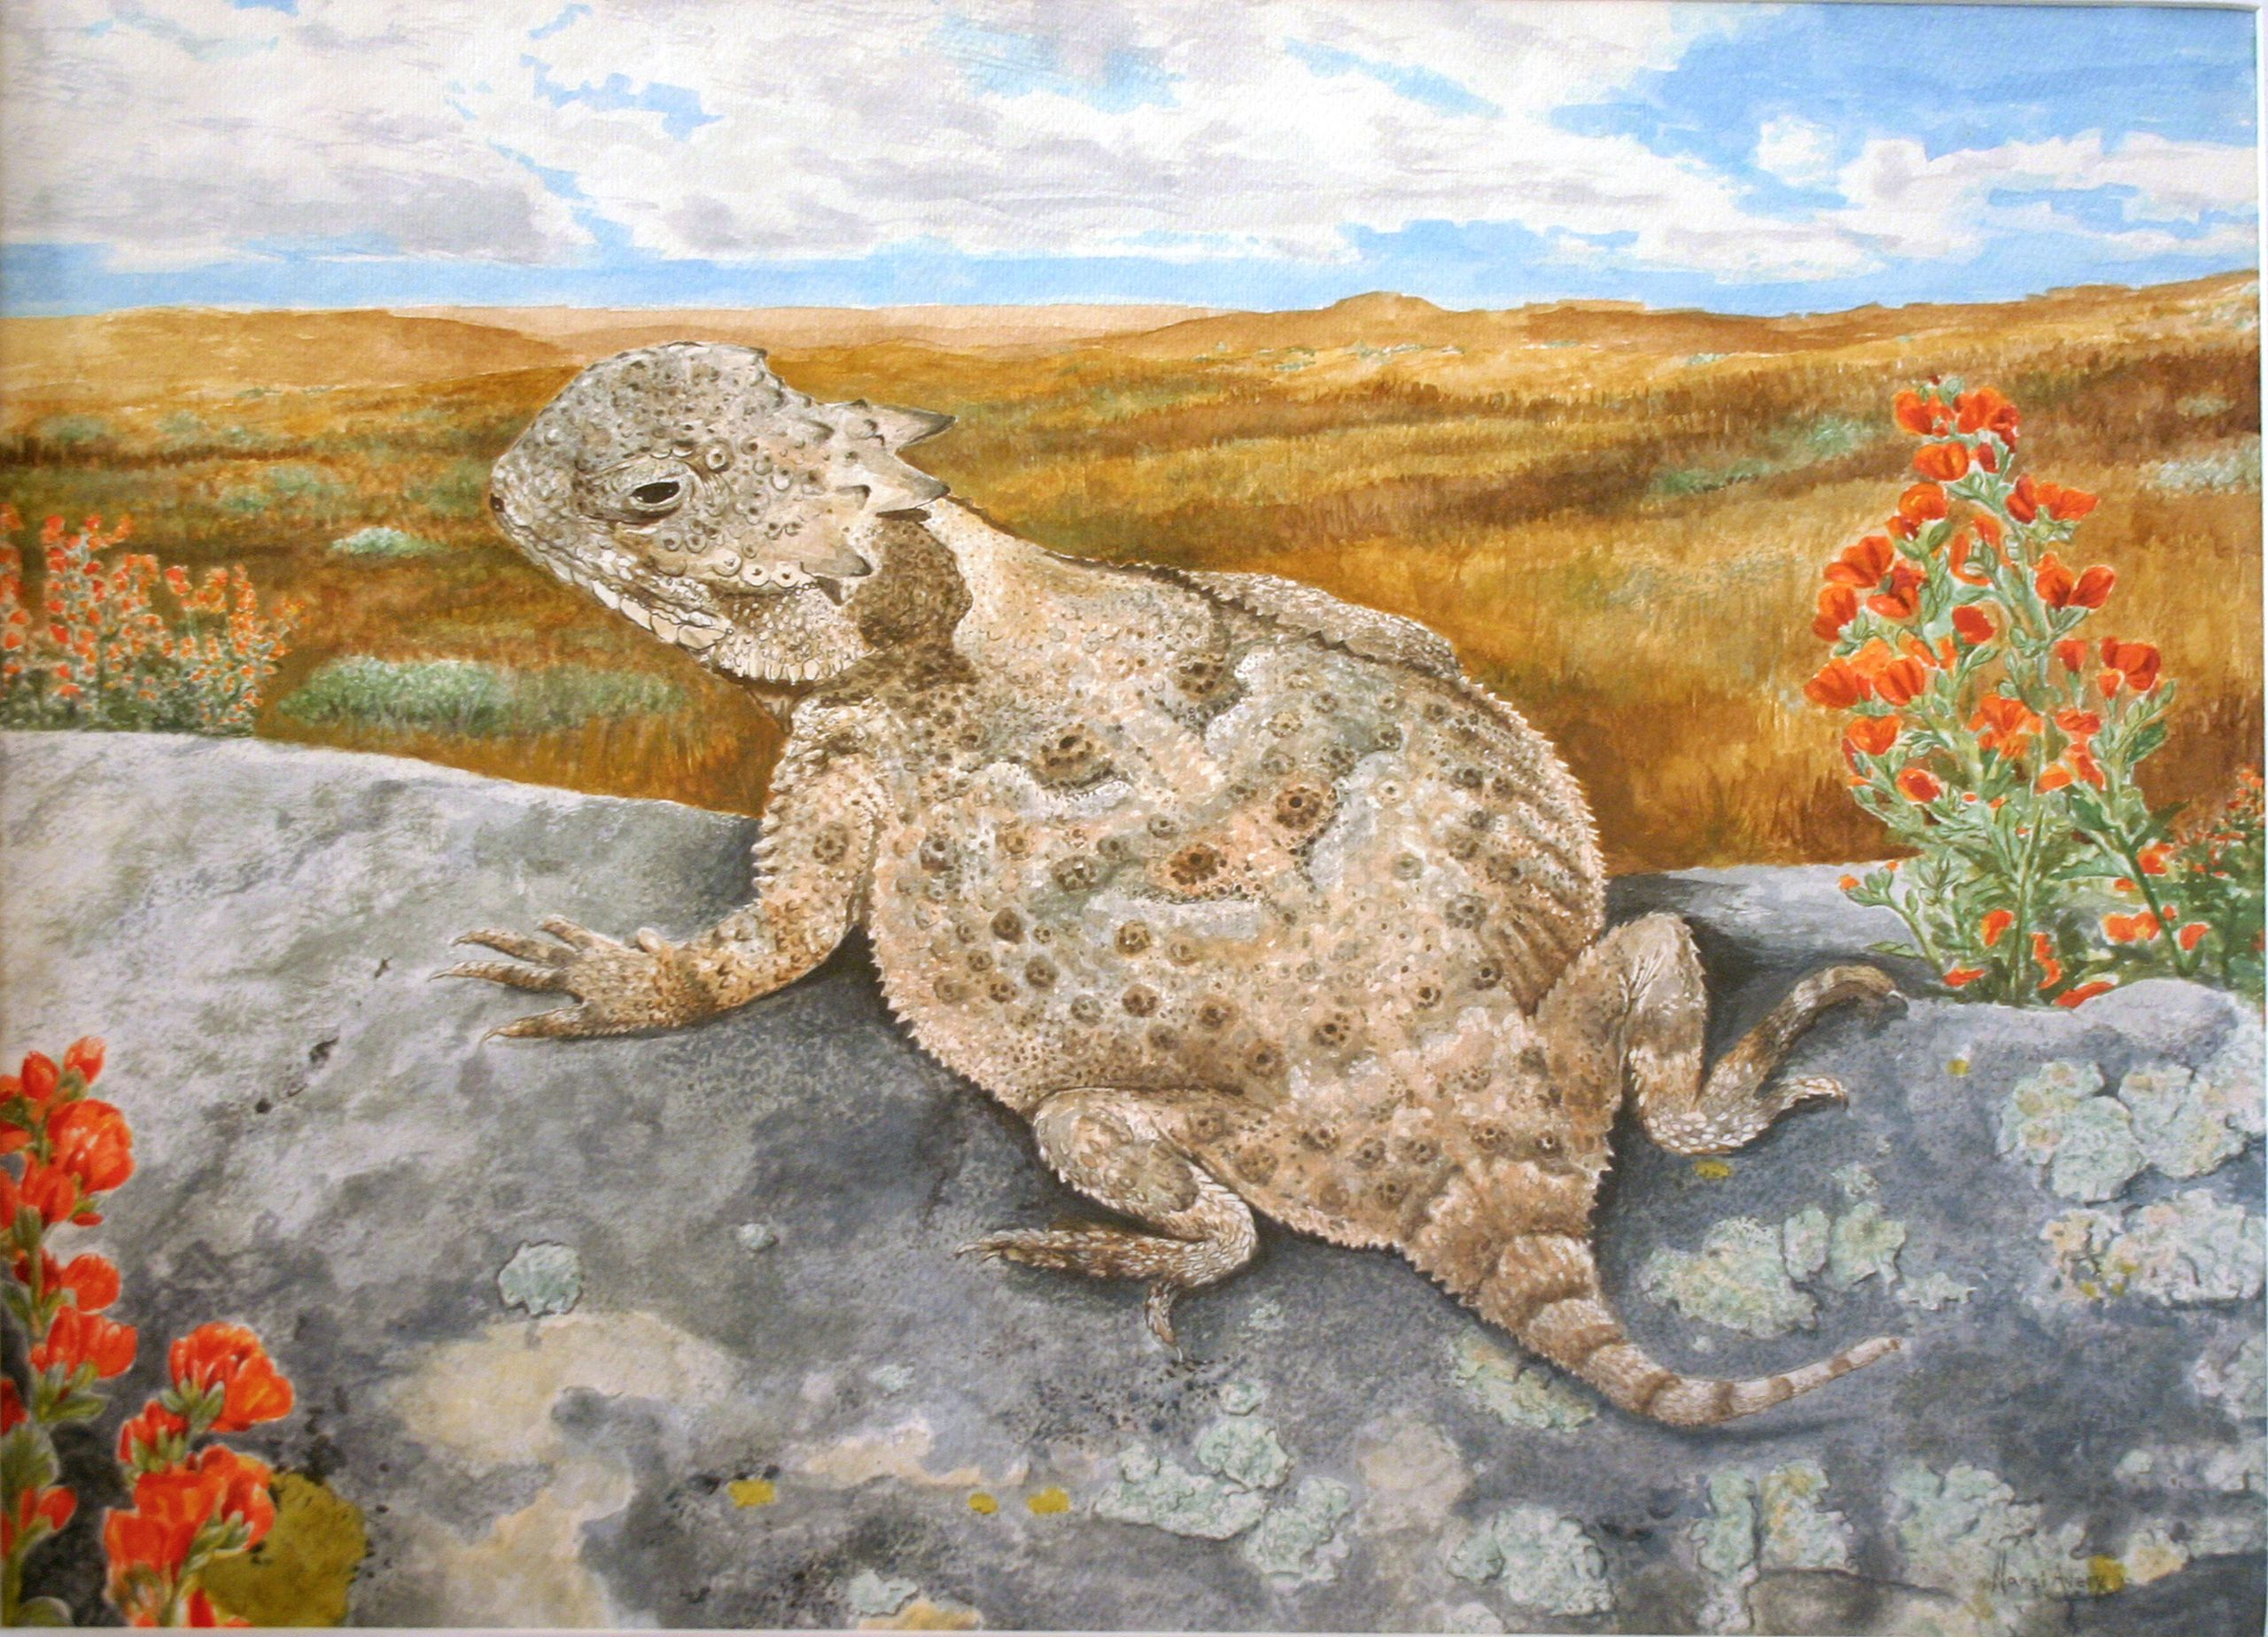 Horned Toad For A Wyoming Conservation Stamp Didnt Win But Sure Was Fun